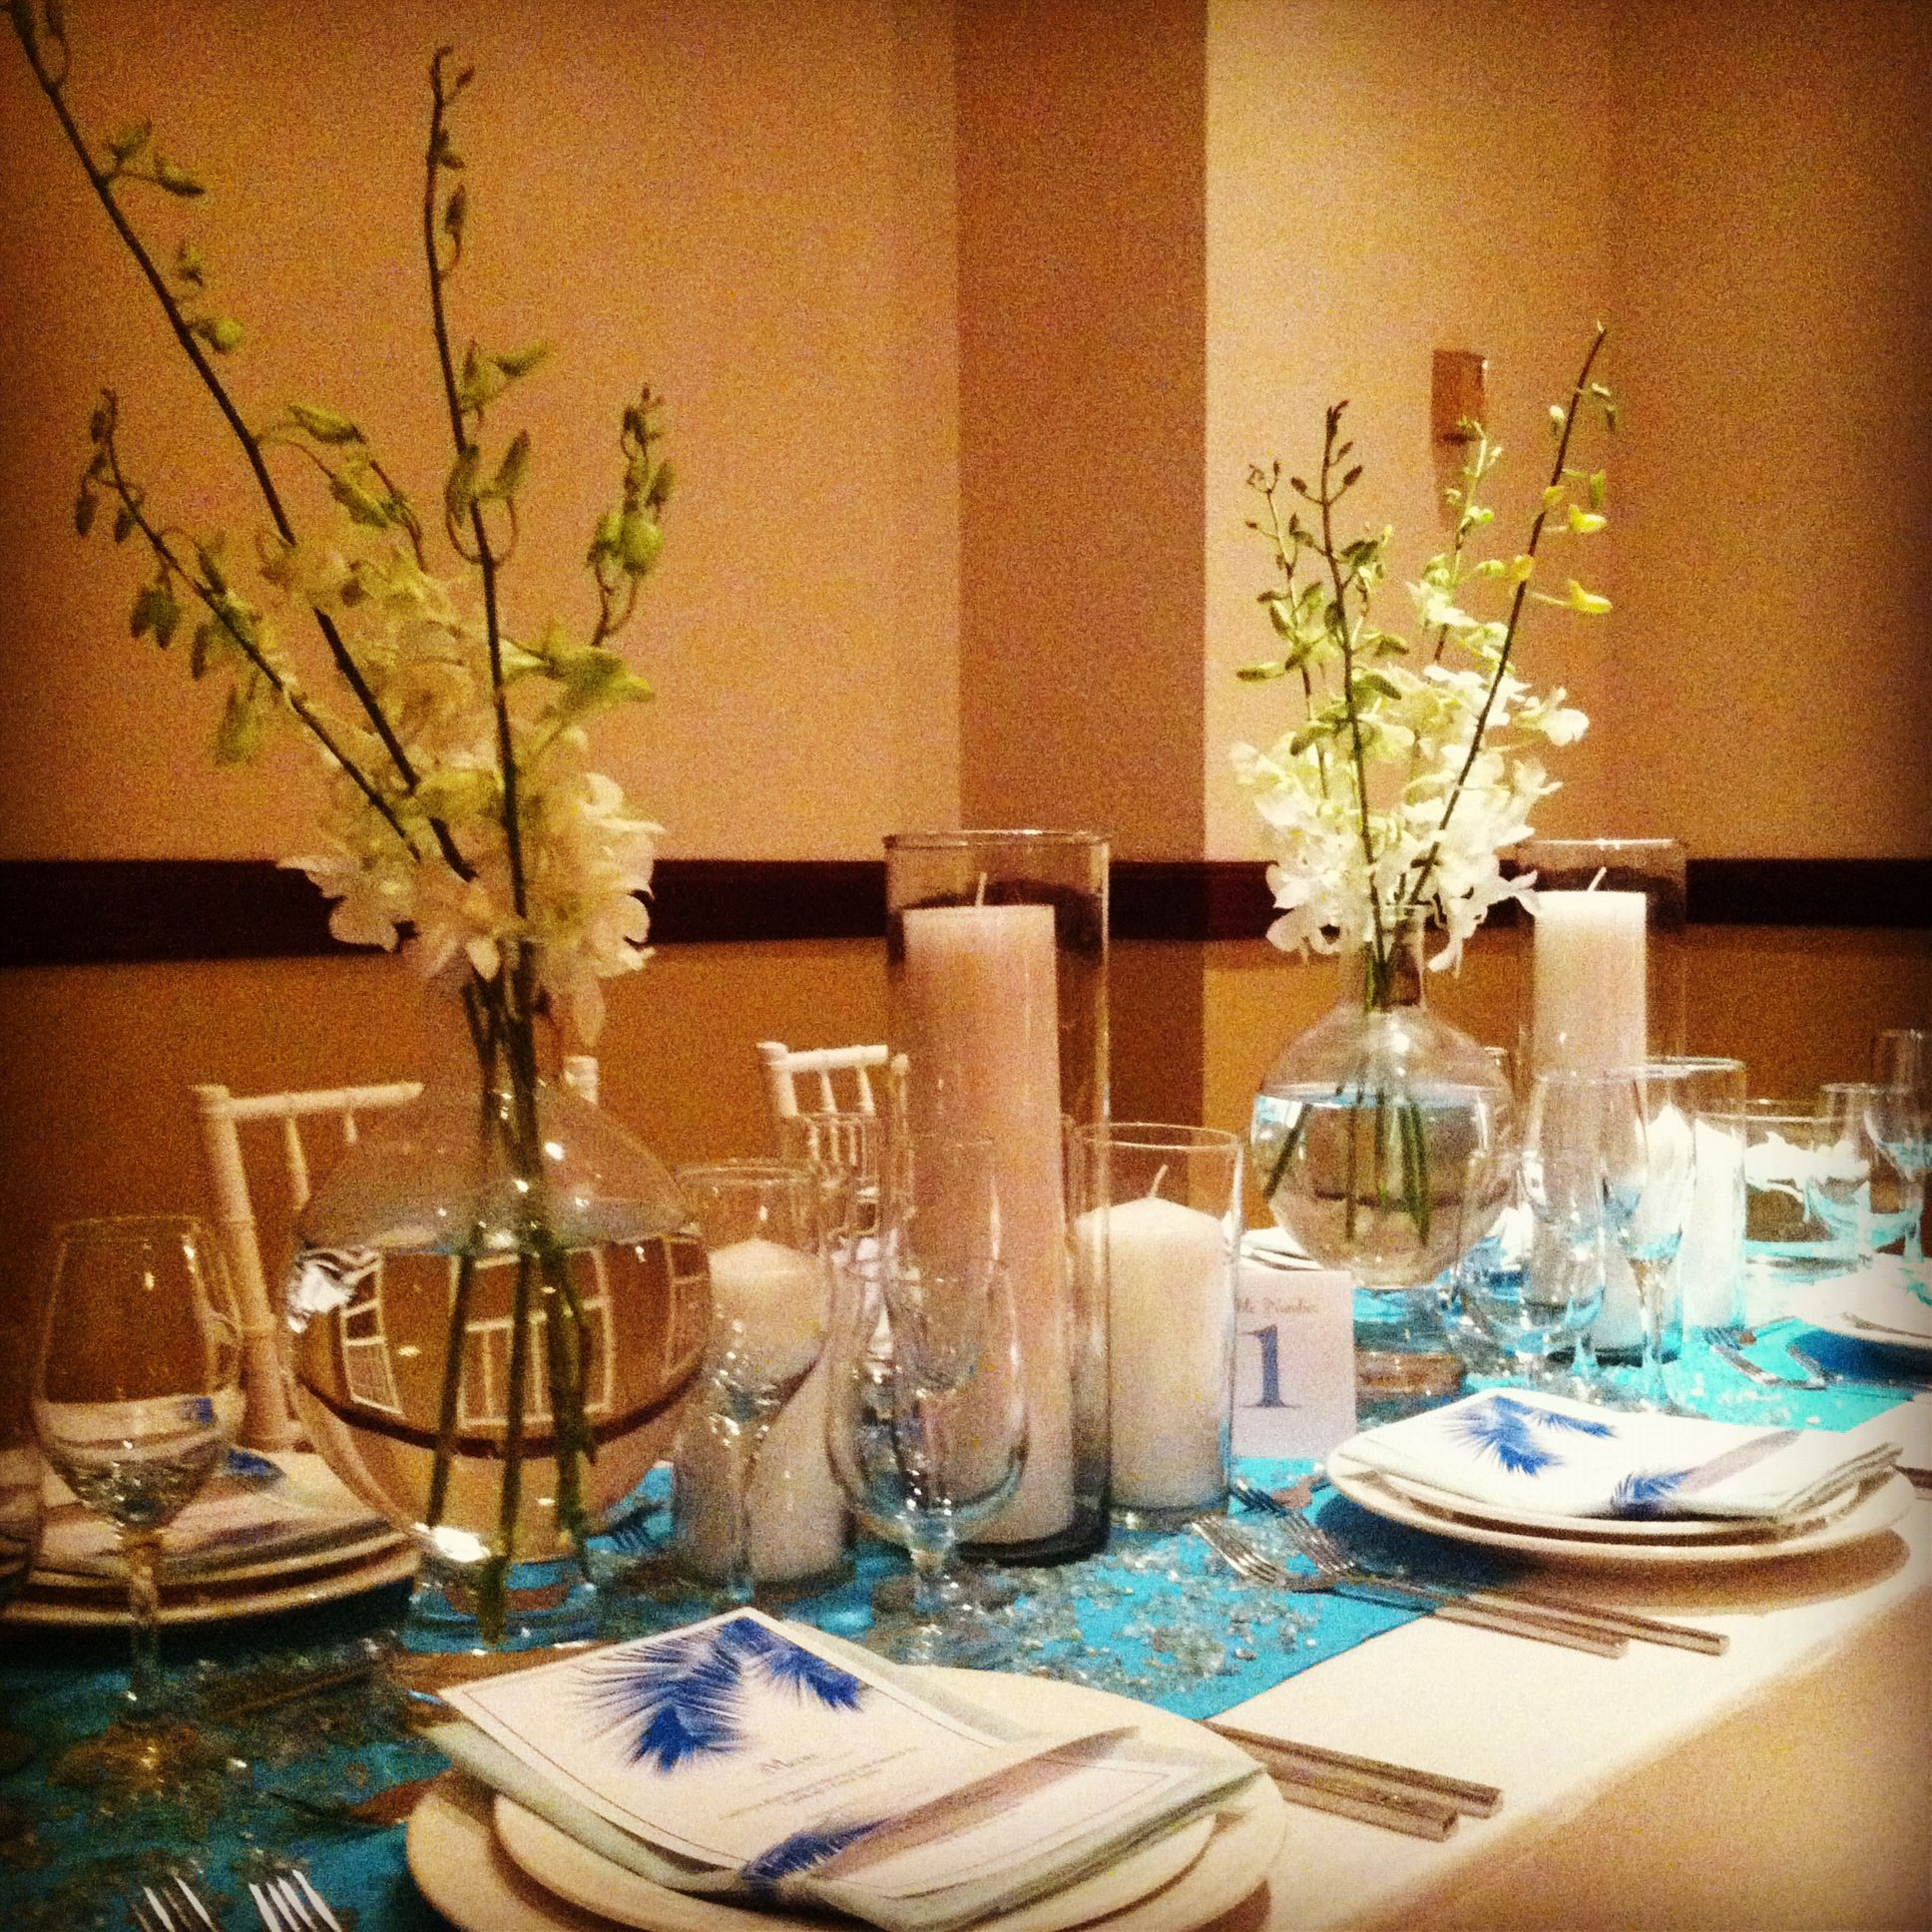 Wedding decor images  Sea glass wedding decor  Wedded Bliss  Pinterest  Sea glass